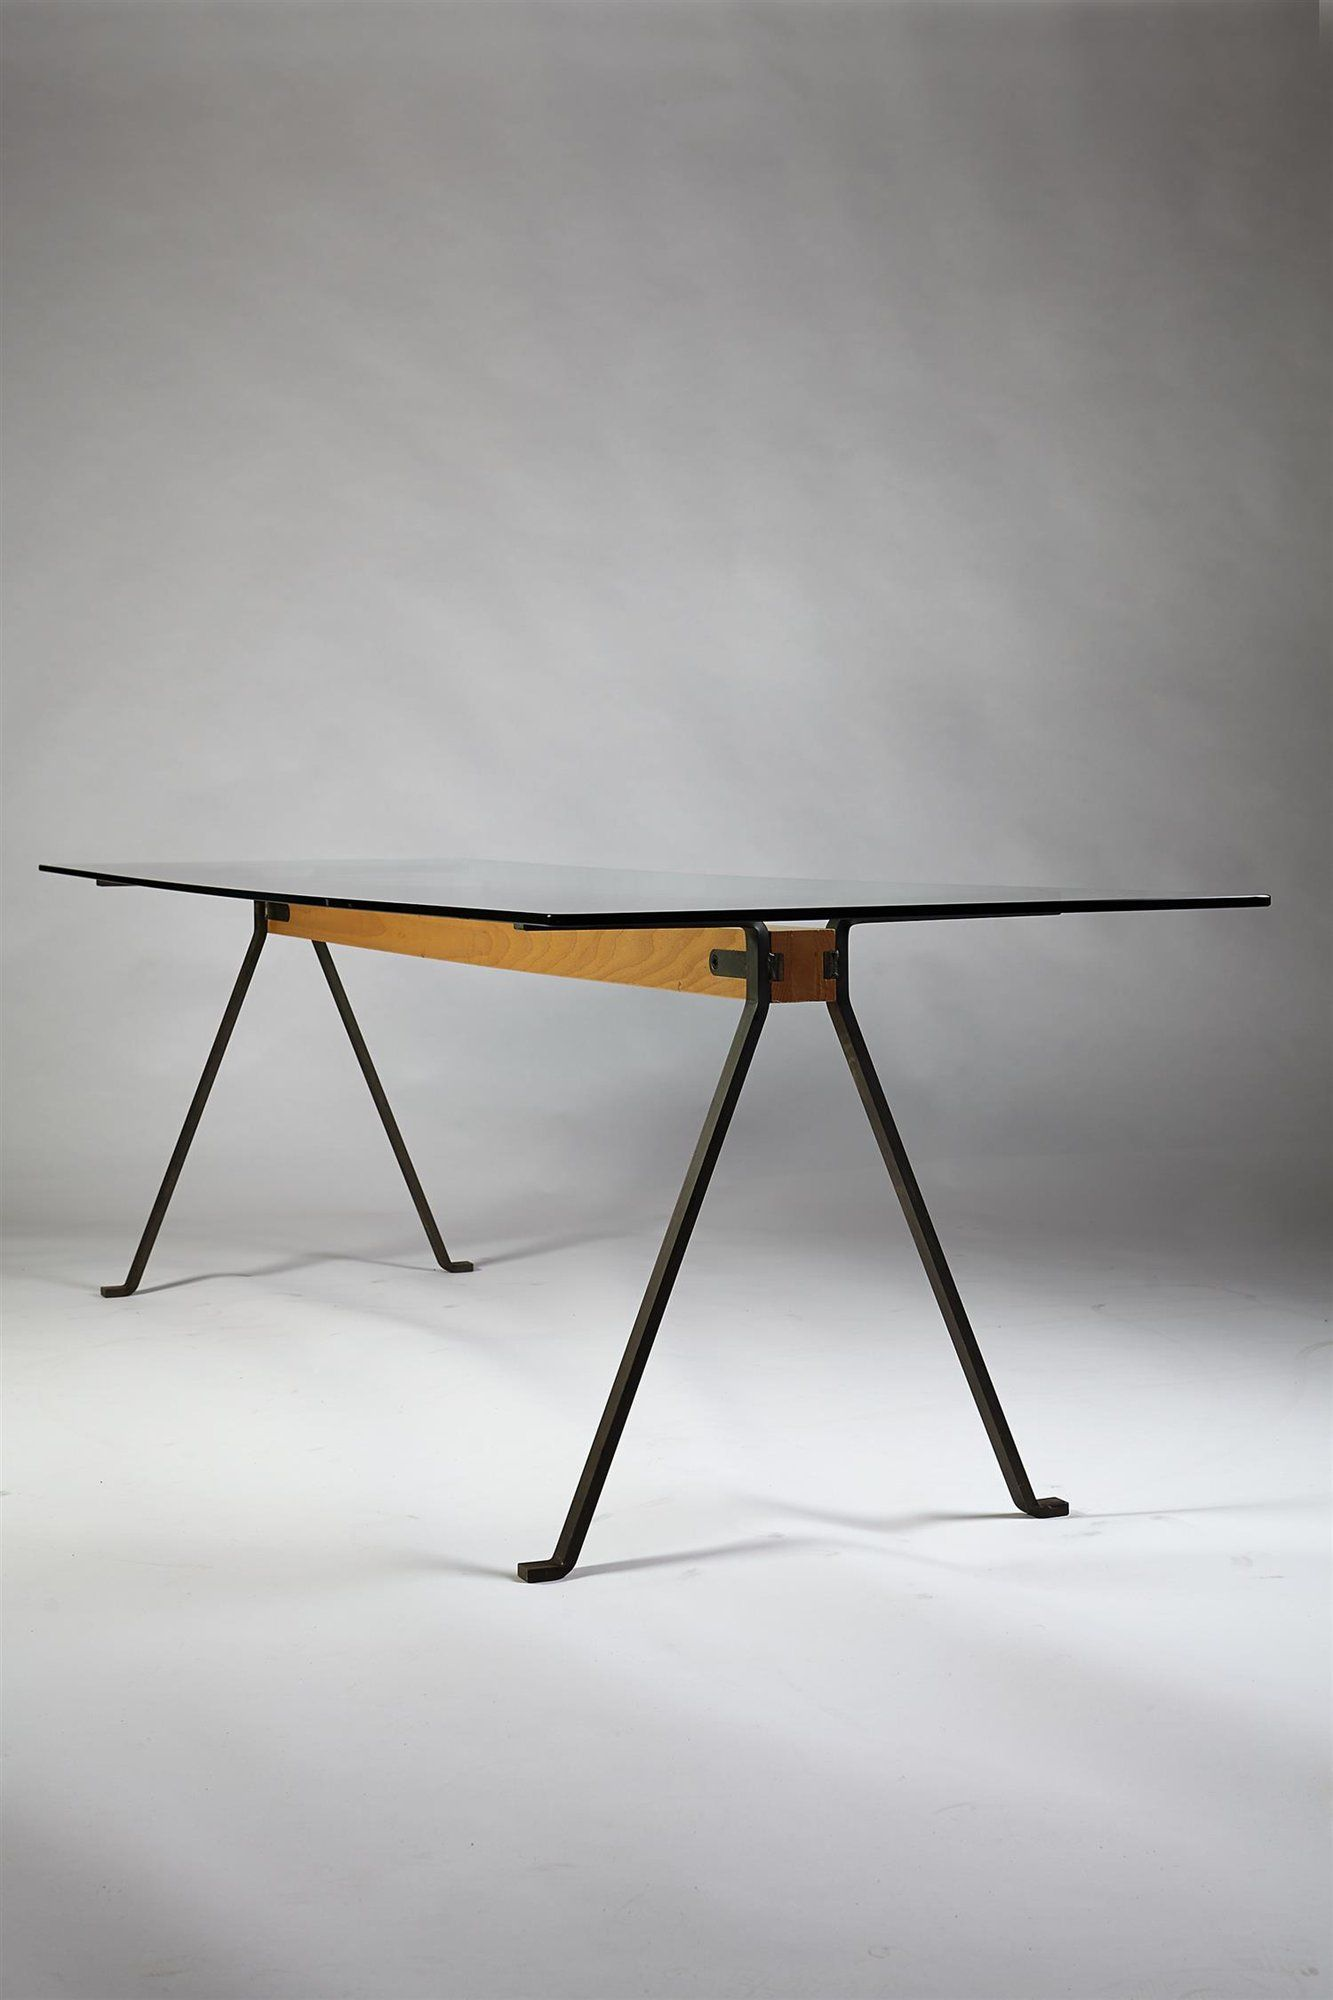 Silla Enzo Mari Frate Dining Table Designed By Enzo Mari For Driade